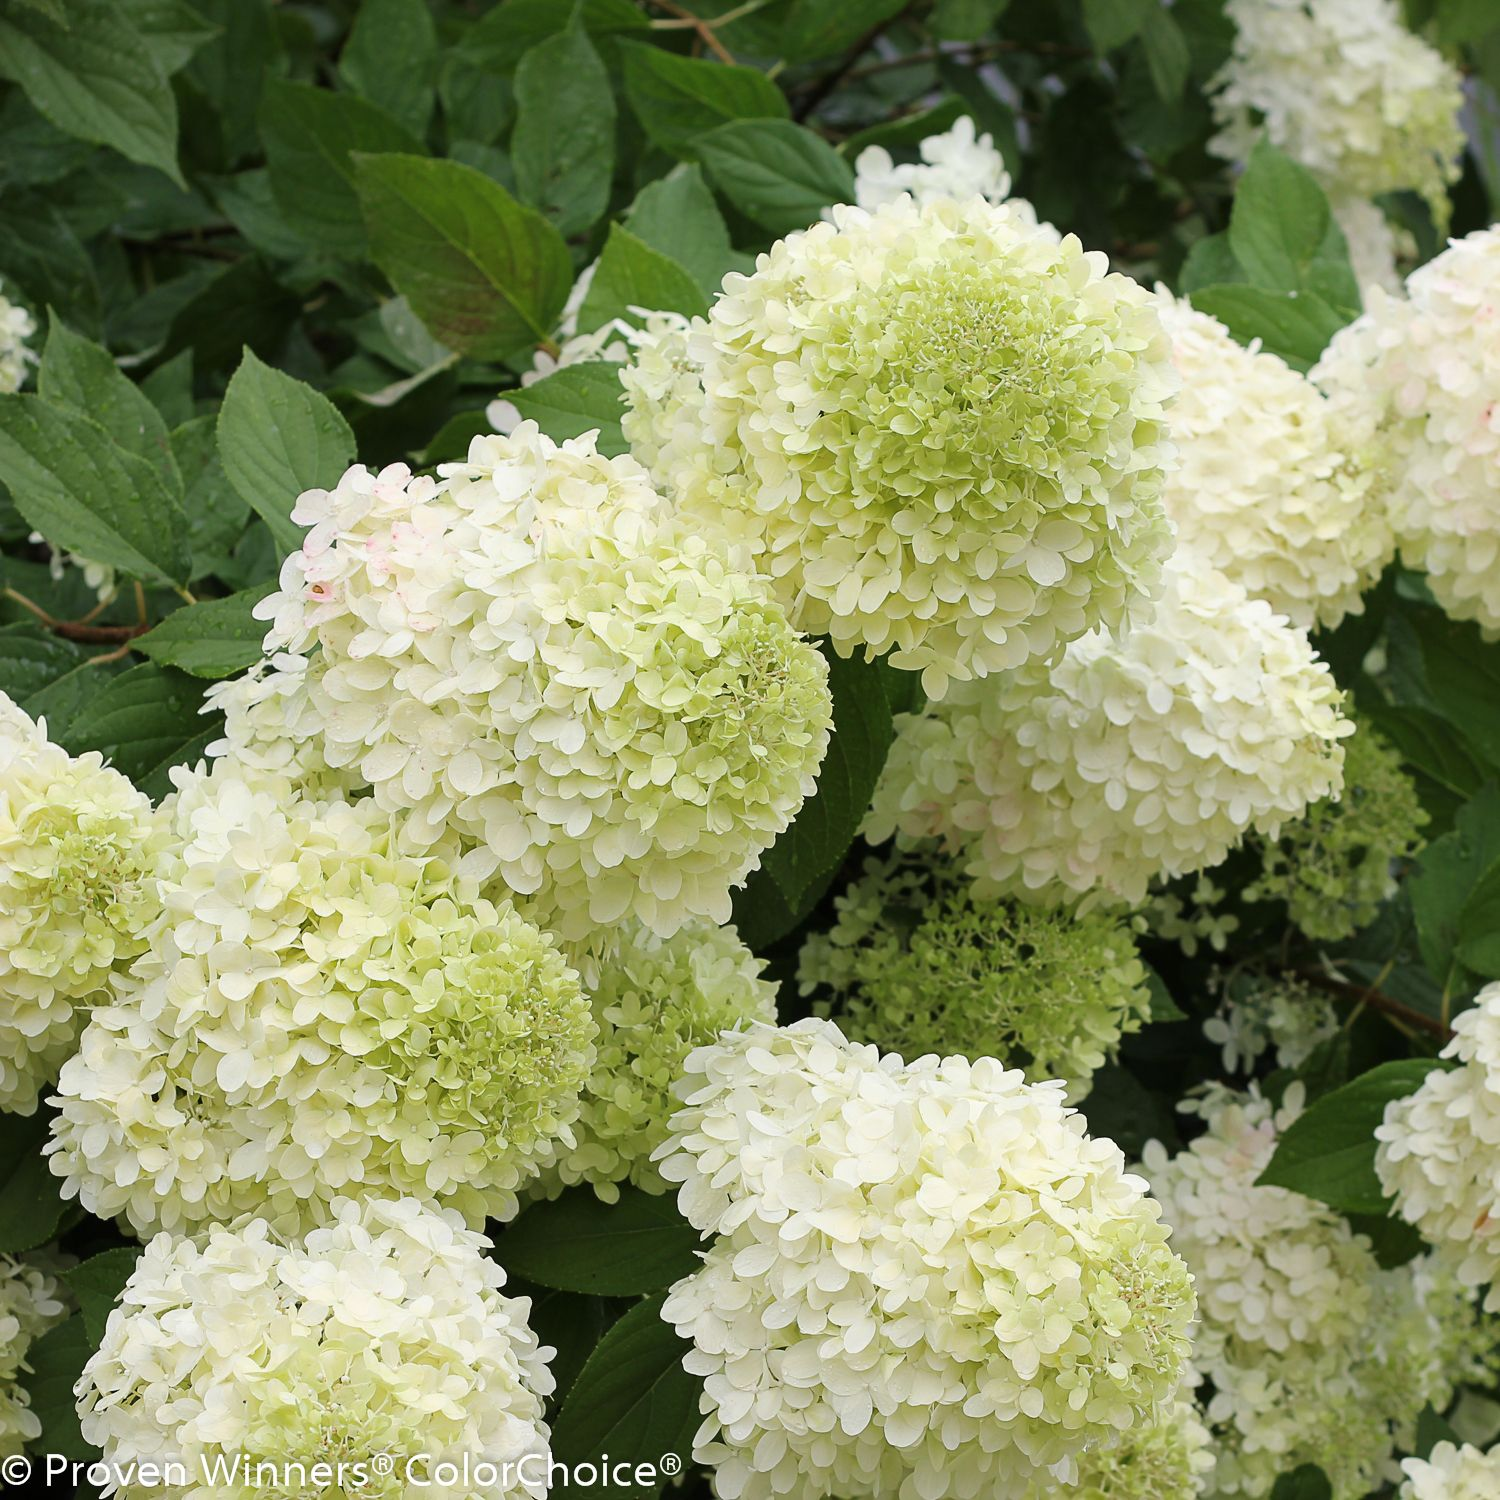 Most Hydrangeas Prefer Only Morning Sun Yet One Type Of Hydrangea Can Soak Up The Sun All Day The Panicle Hy Hydrangea Care Panicle Hydrangea Hardy Hydrangea